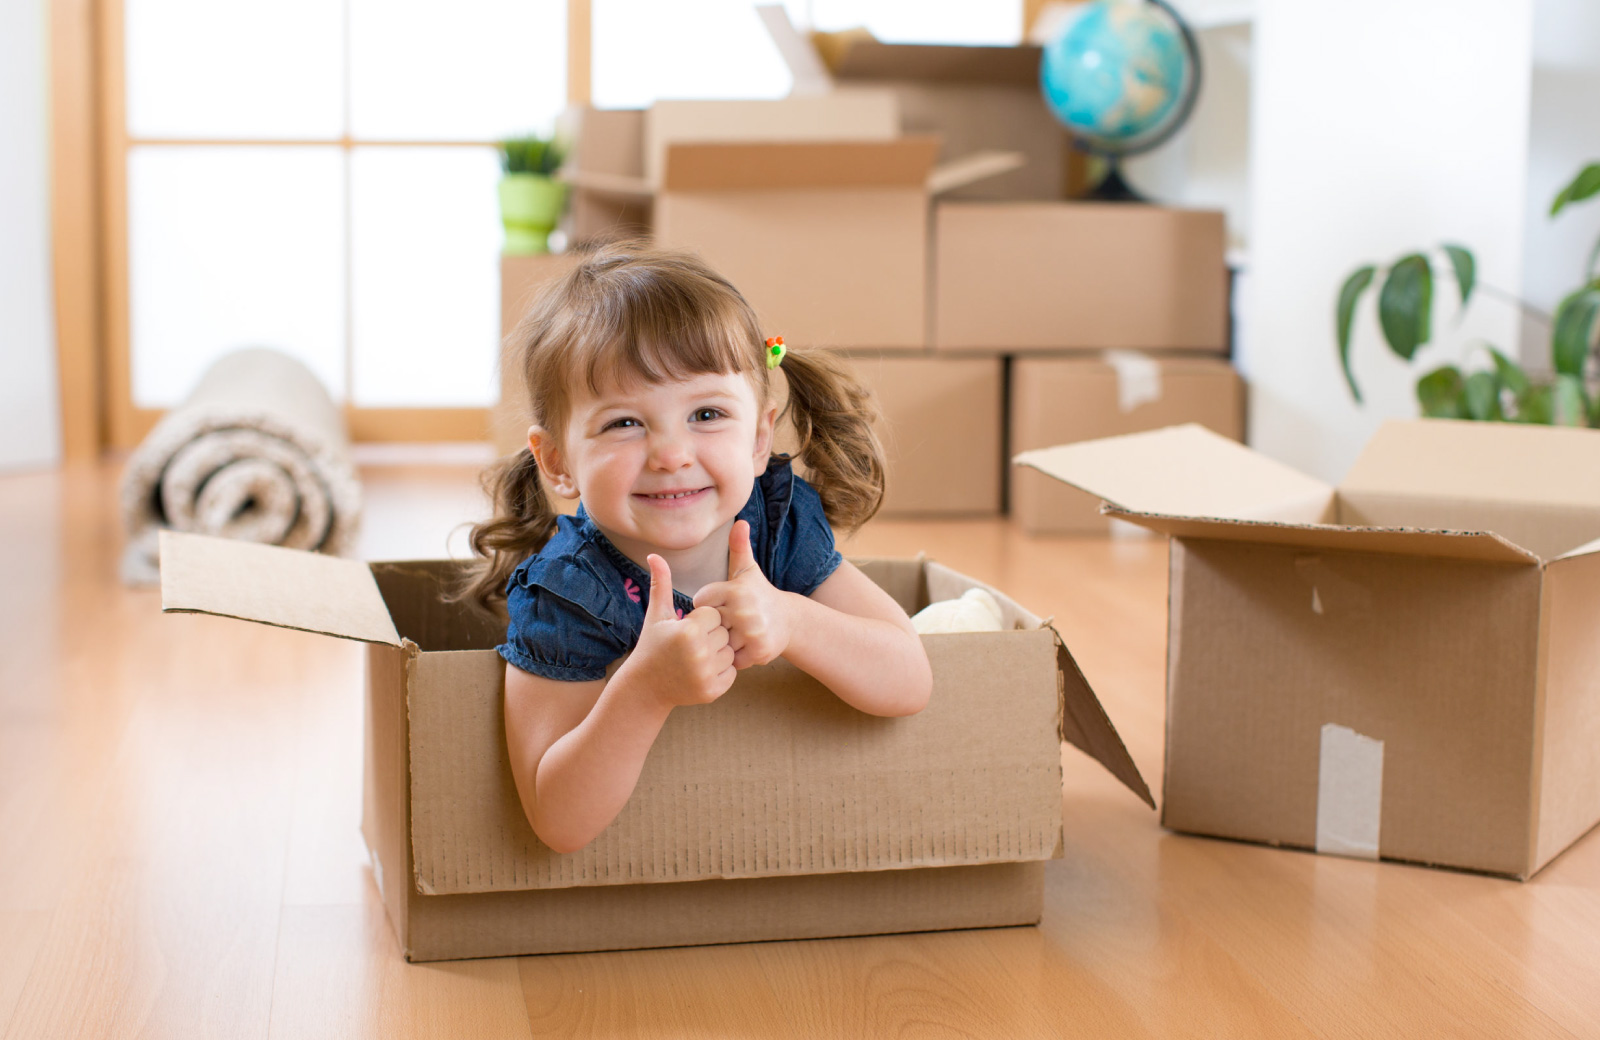 little girl posing and playing with storage boxes